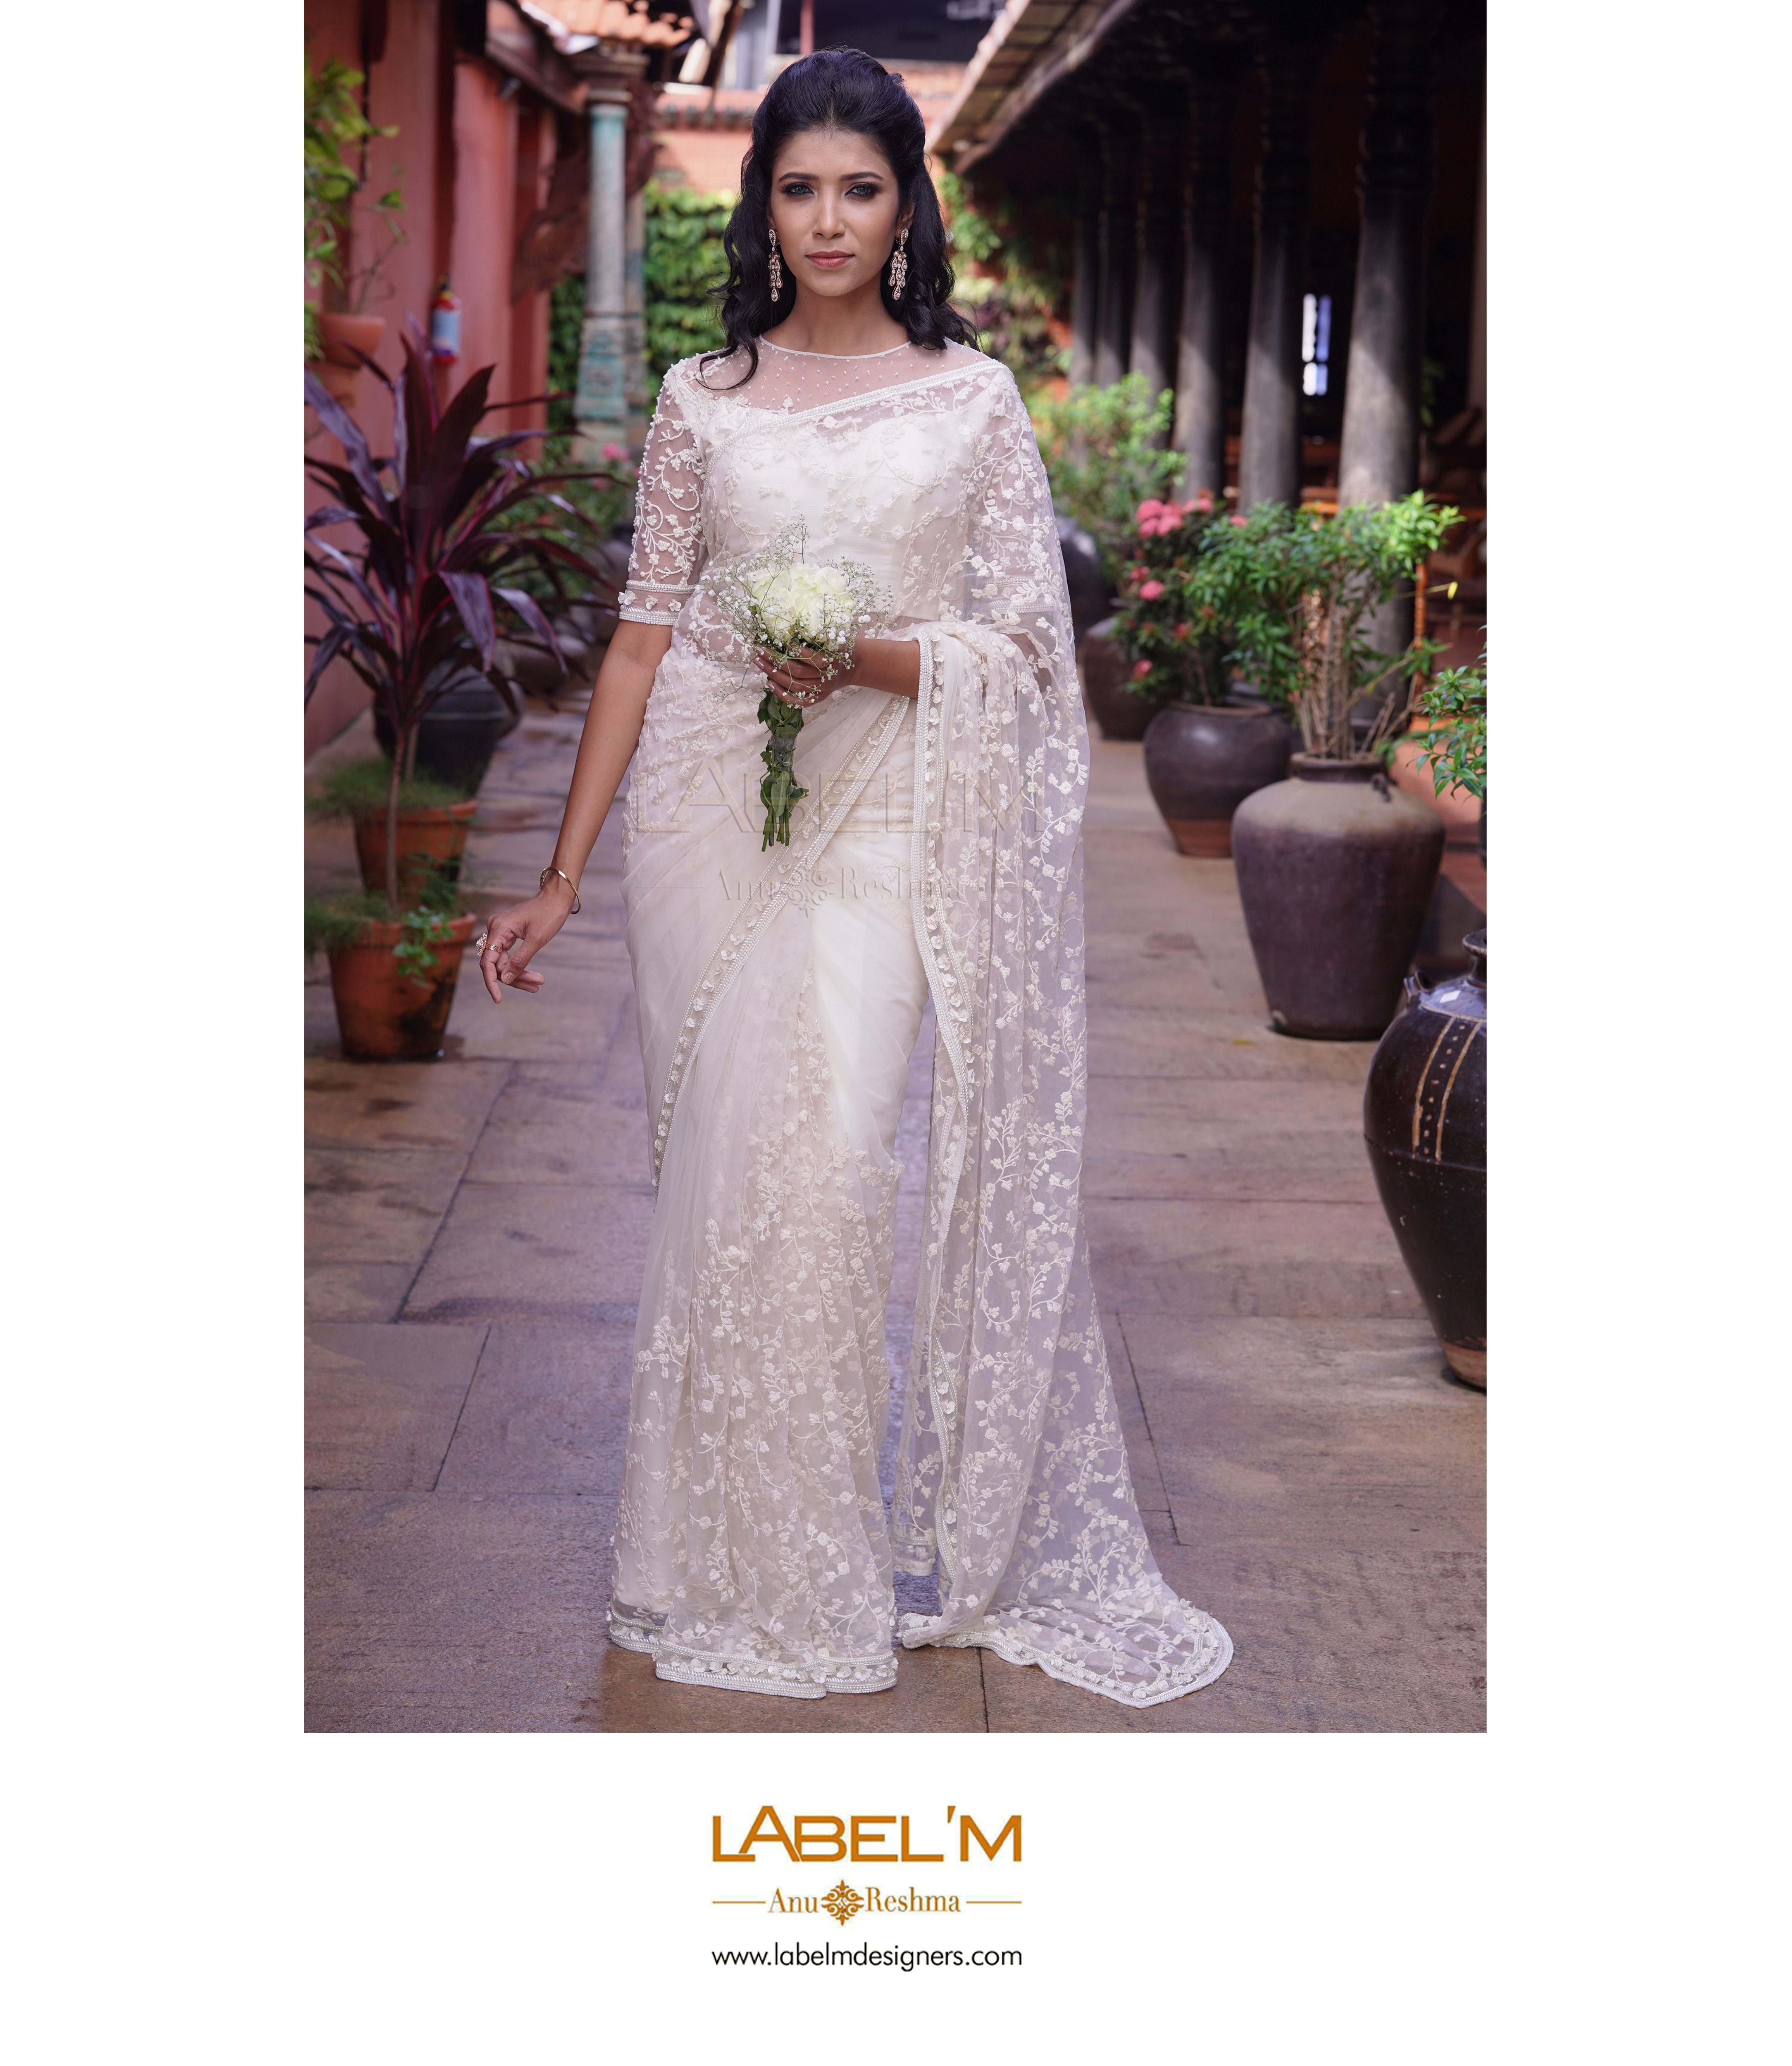 Here S We Presenting You The Exquisite Bridal Looks For The Next Season Book Your Bridal Appointments Now Whatspp Call 989594 Bridal Looks Bridal Wedding Dresses